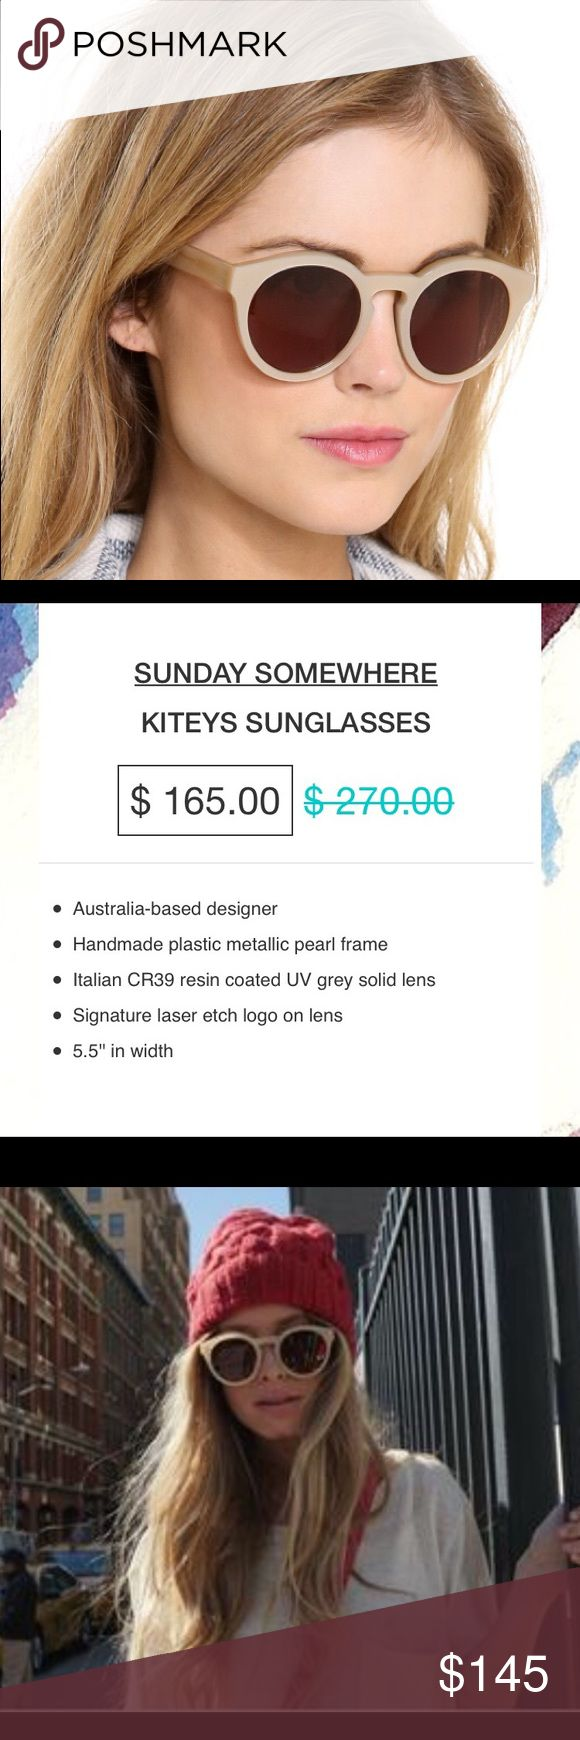 Sunday somewhere Kiteys sunglasses Brand new in original packaging! Item info listed on last photo. No trades. Sunday Somewhere Accessories Sunglasses